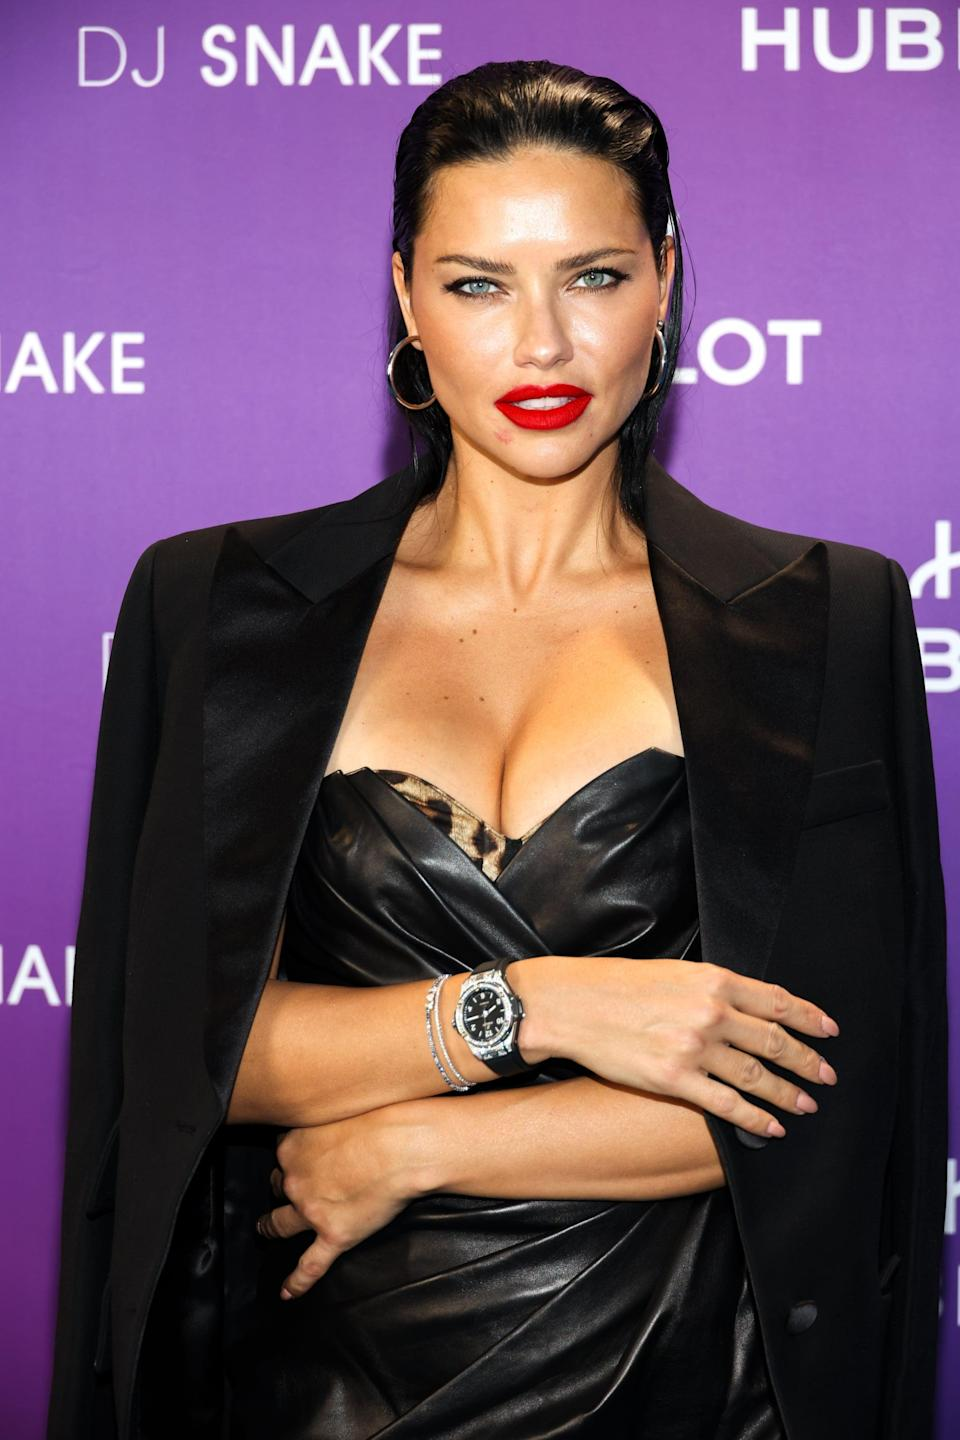 <p>Adriana's solo appearance gave what it was suppose to give.</p>